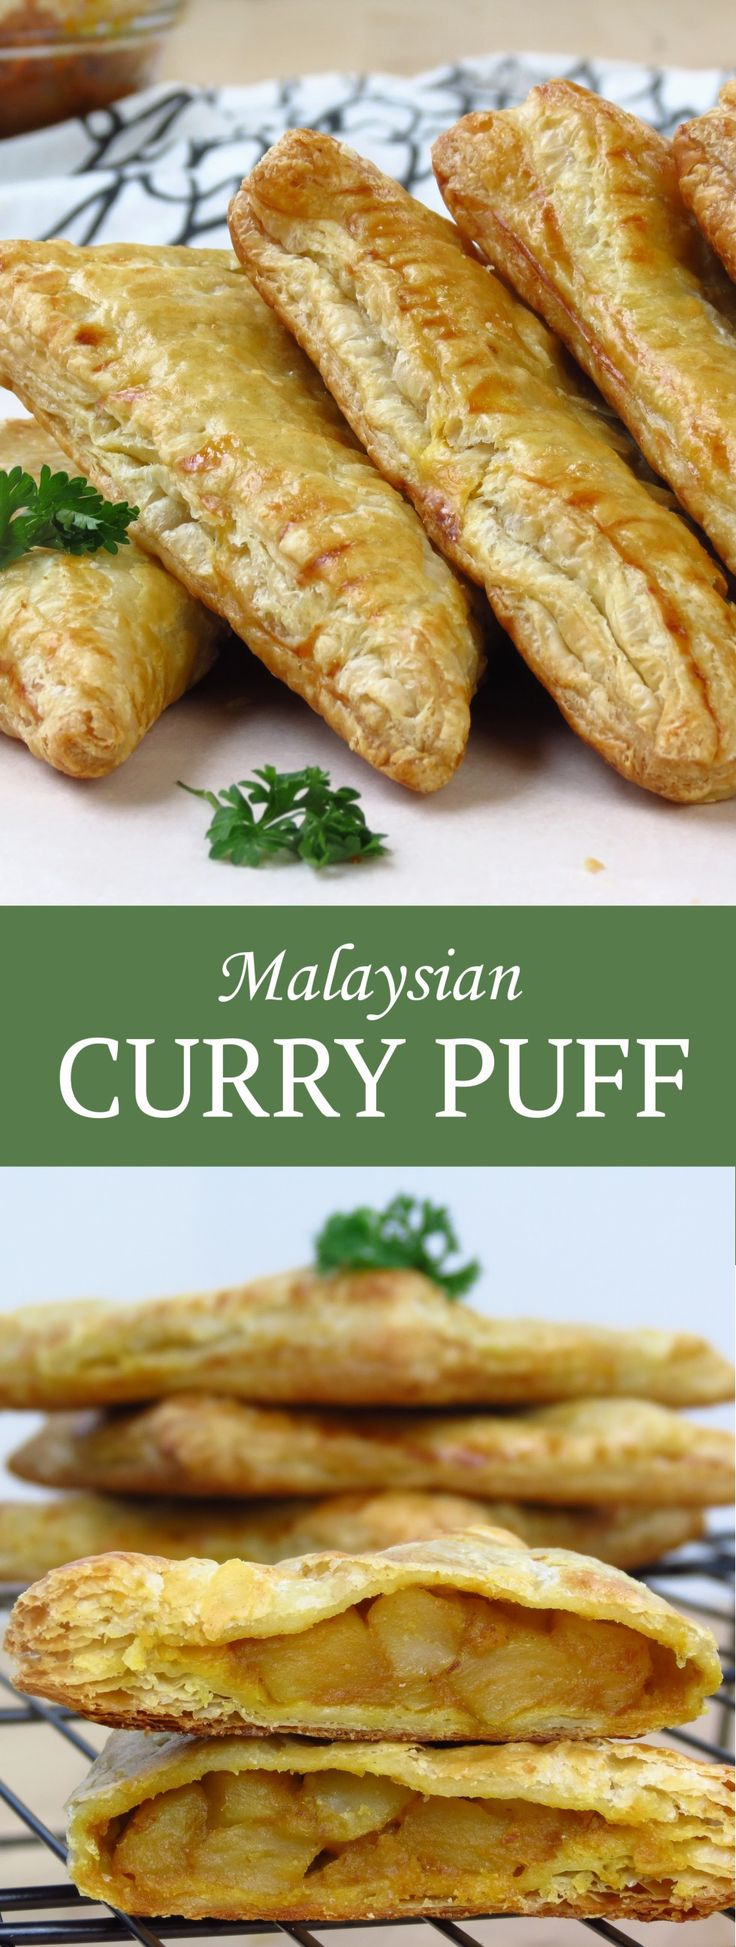 Malaysian Curry Puff